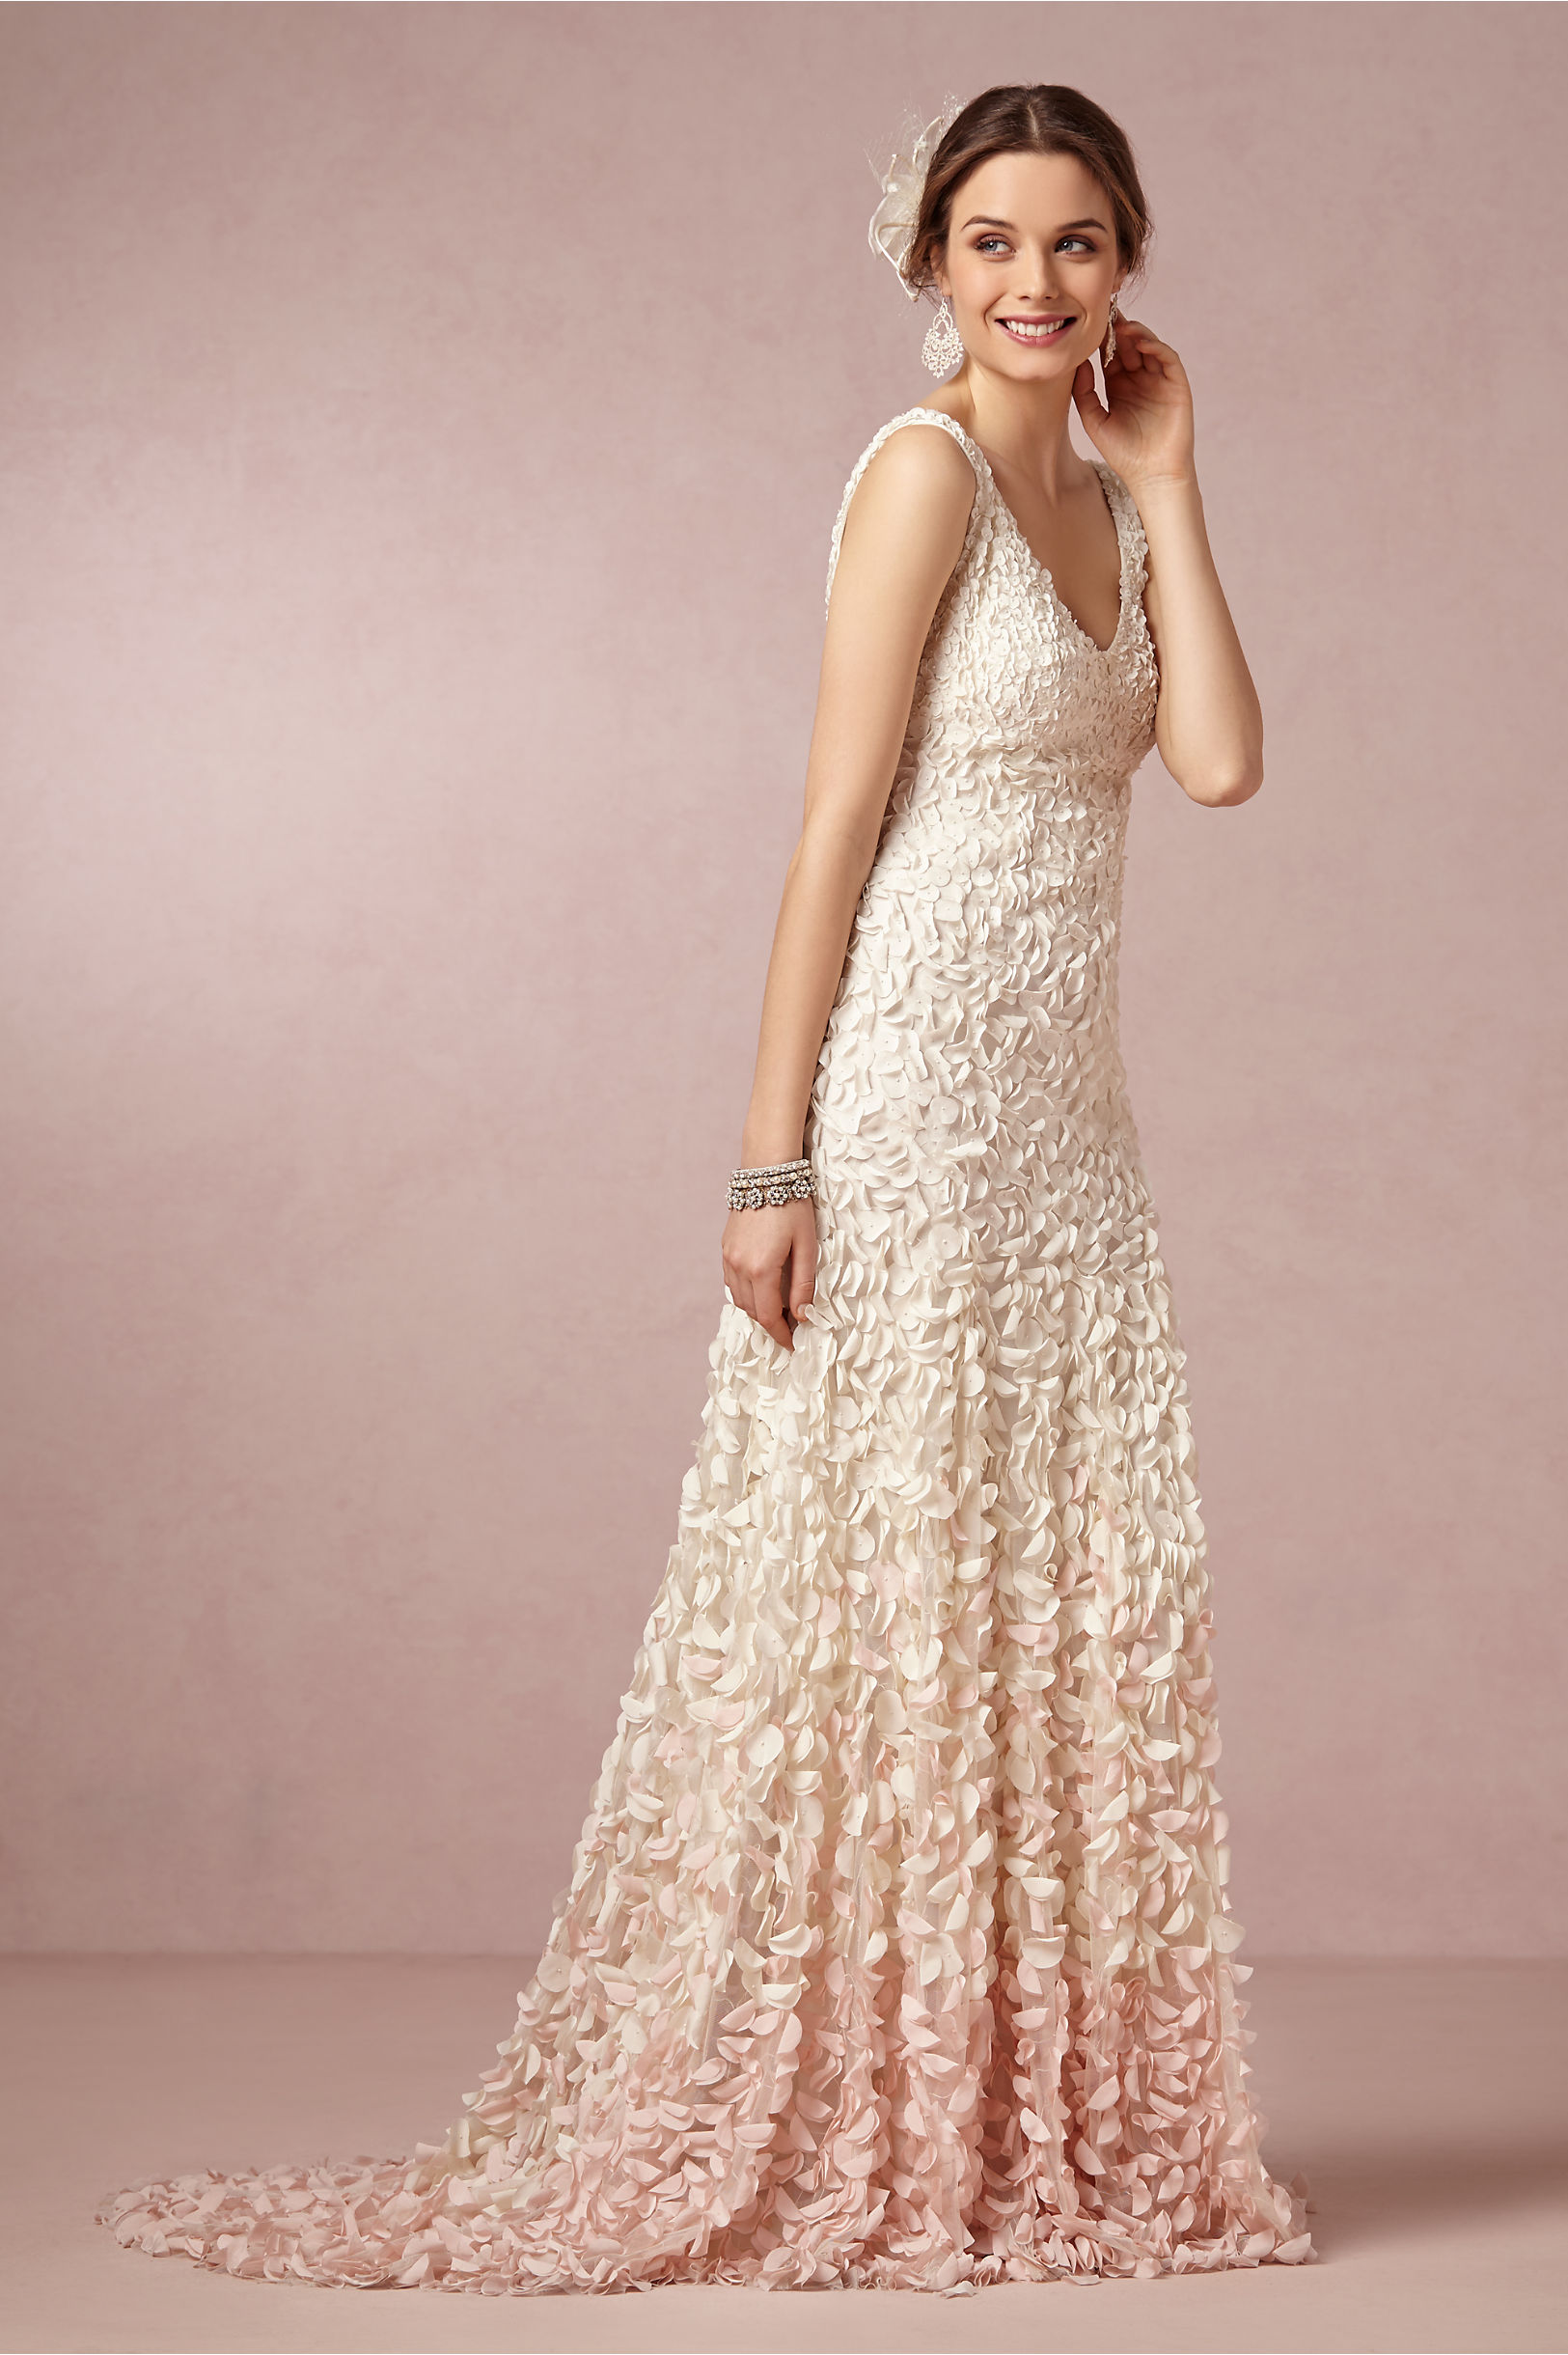 blush petal wedding dress